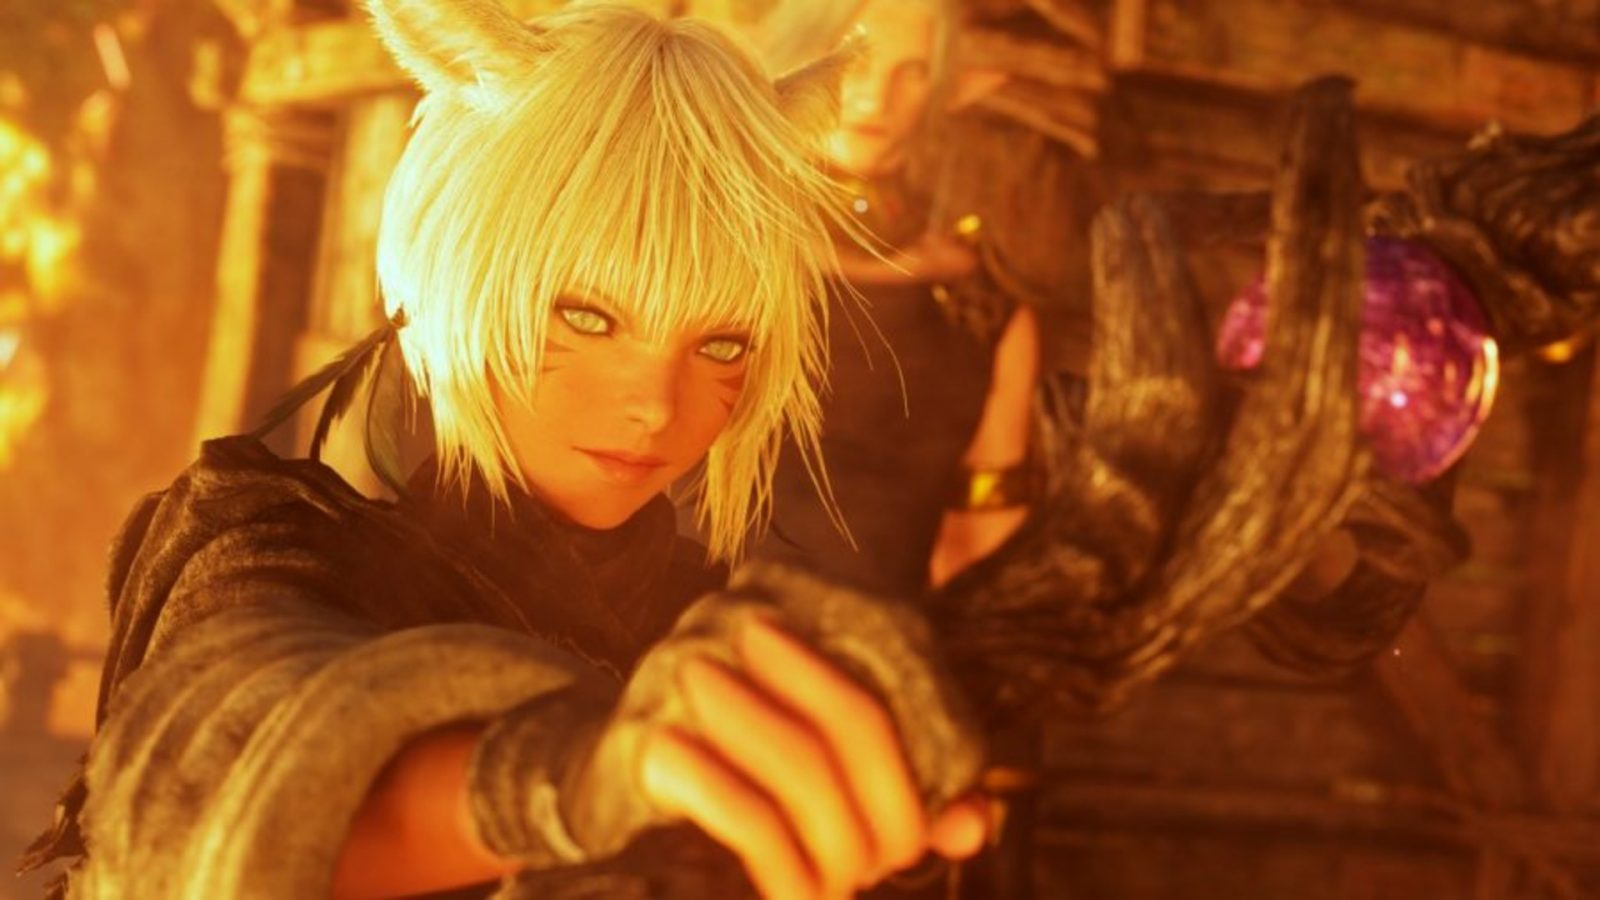 Final Fantasy XIV has brought in two million more players since Shadowbringers